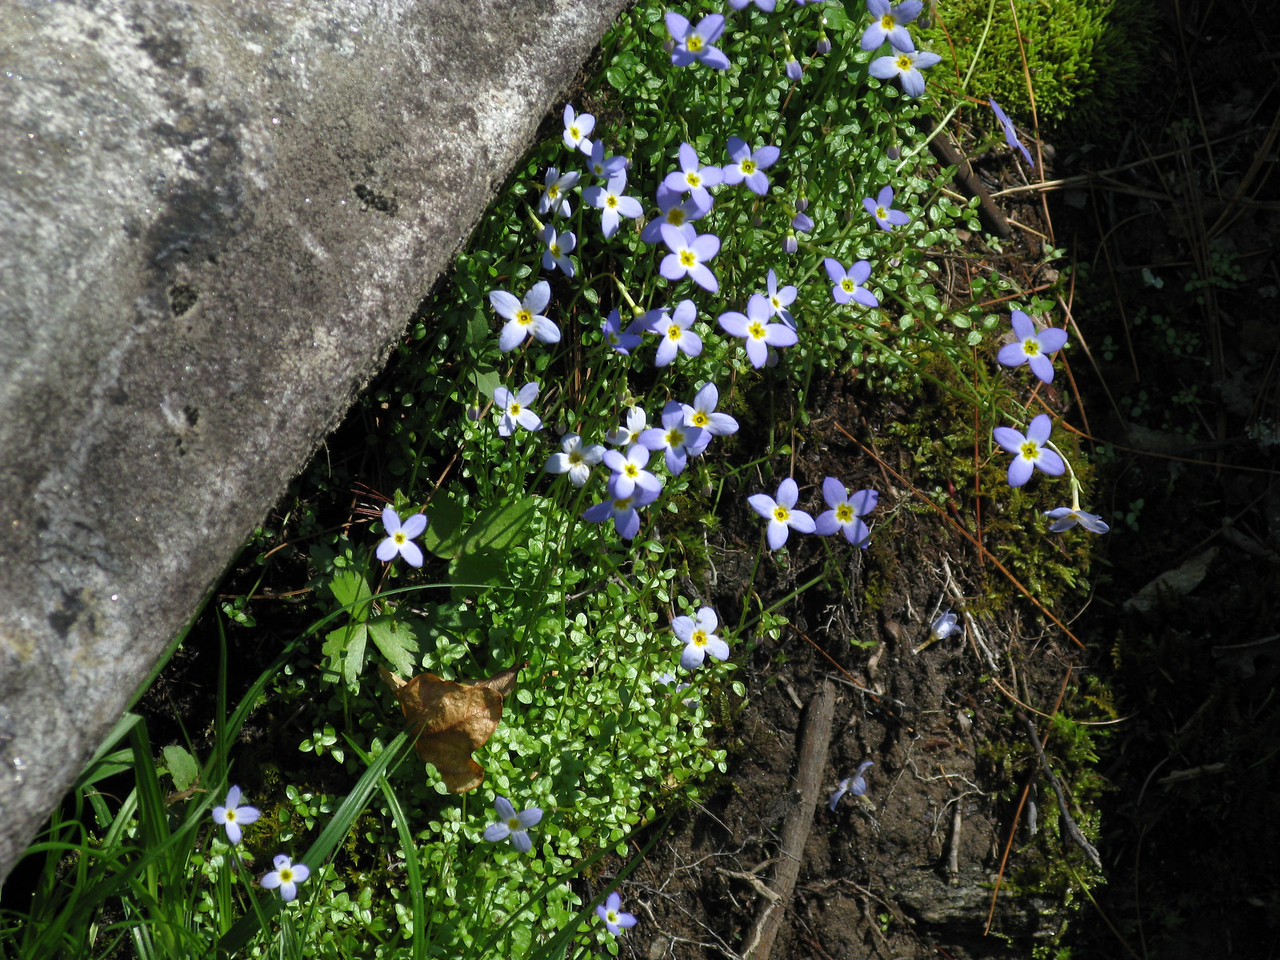 Bluets<br /> Hooker Falls<br /> Dupont Forest State Park<br /> April 24, 2008